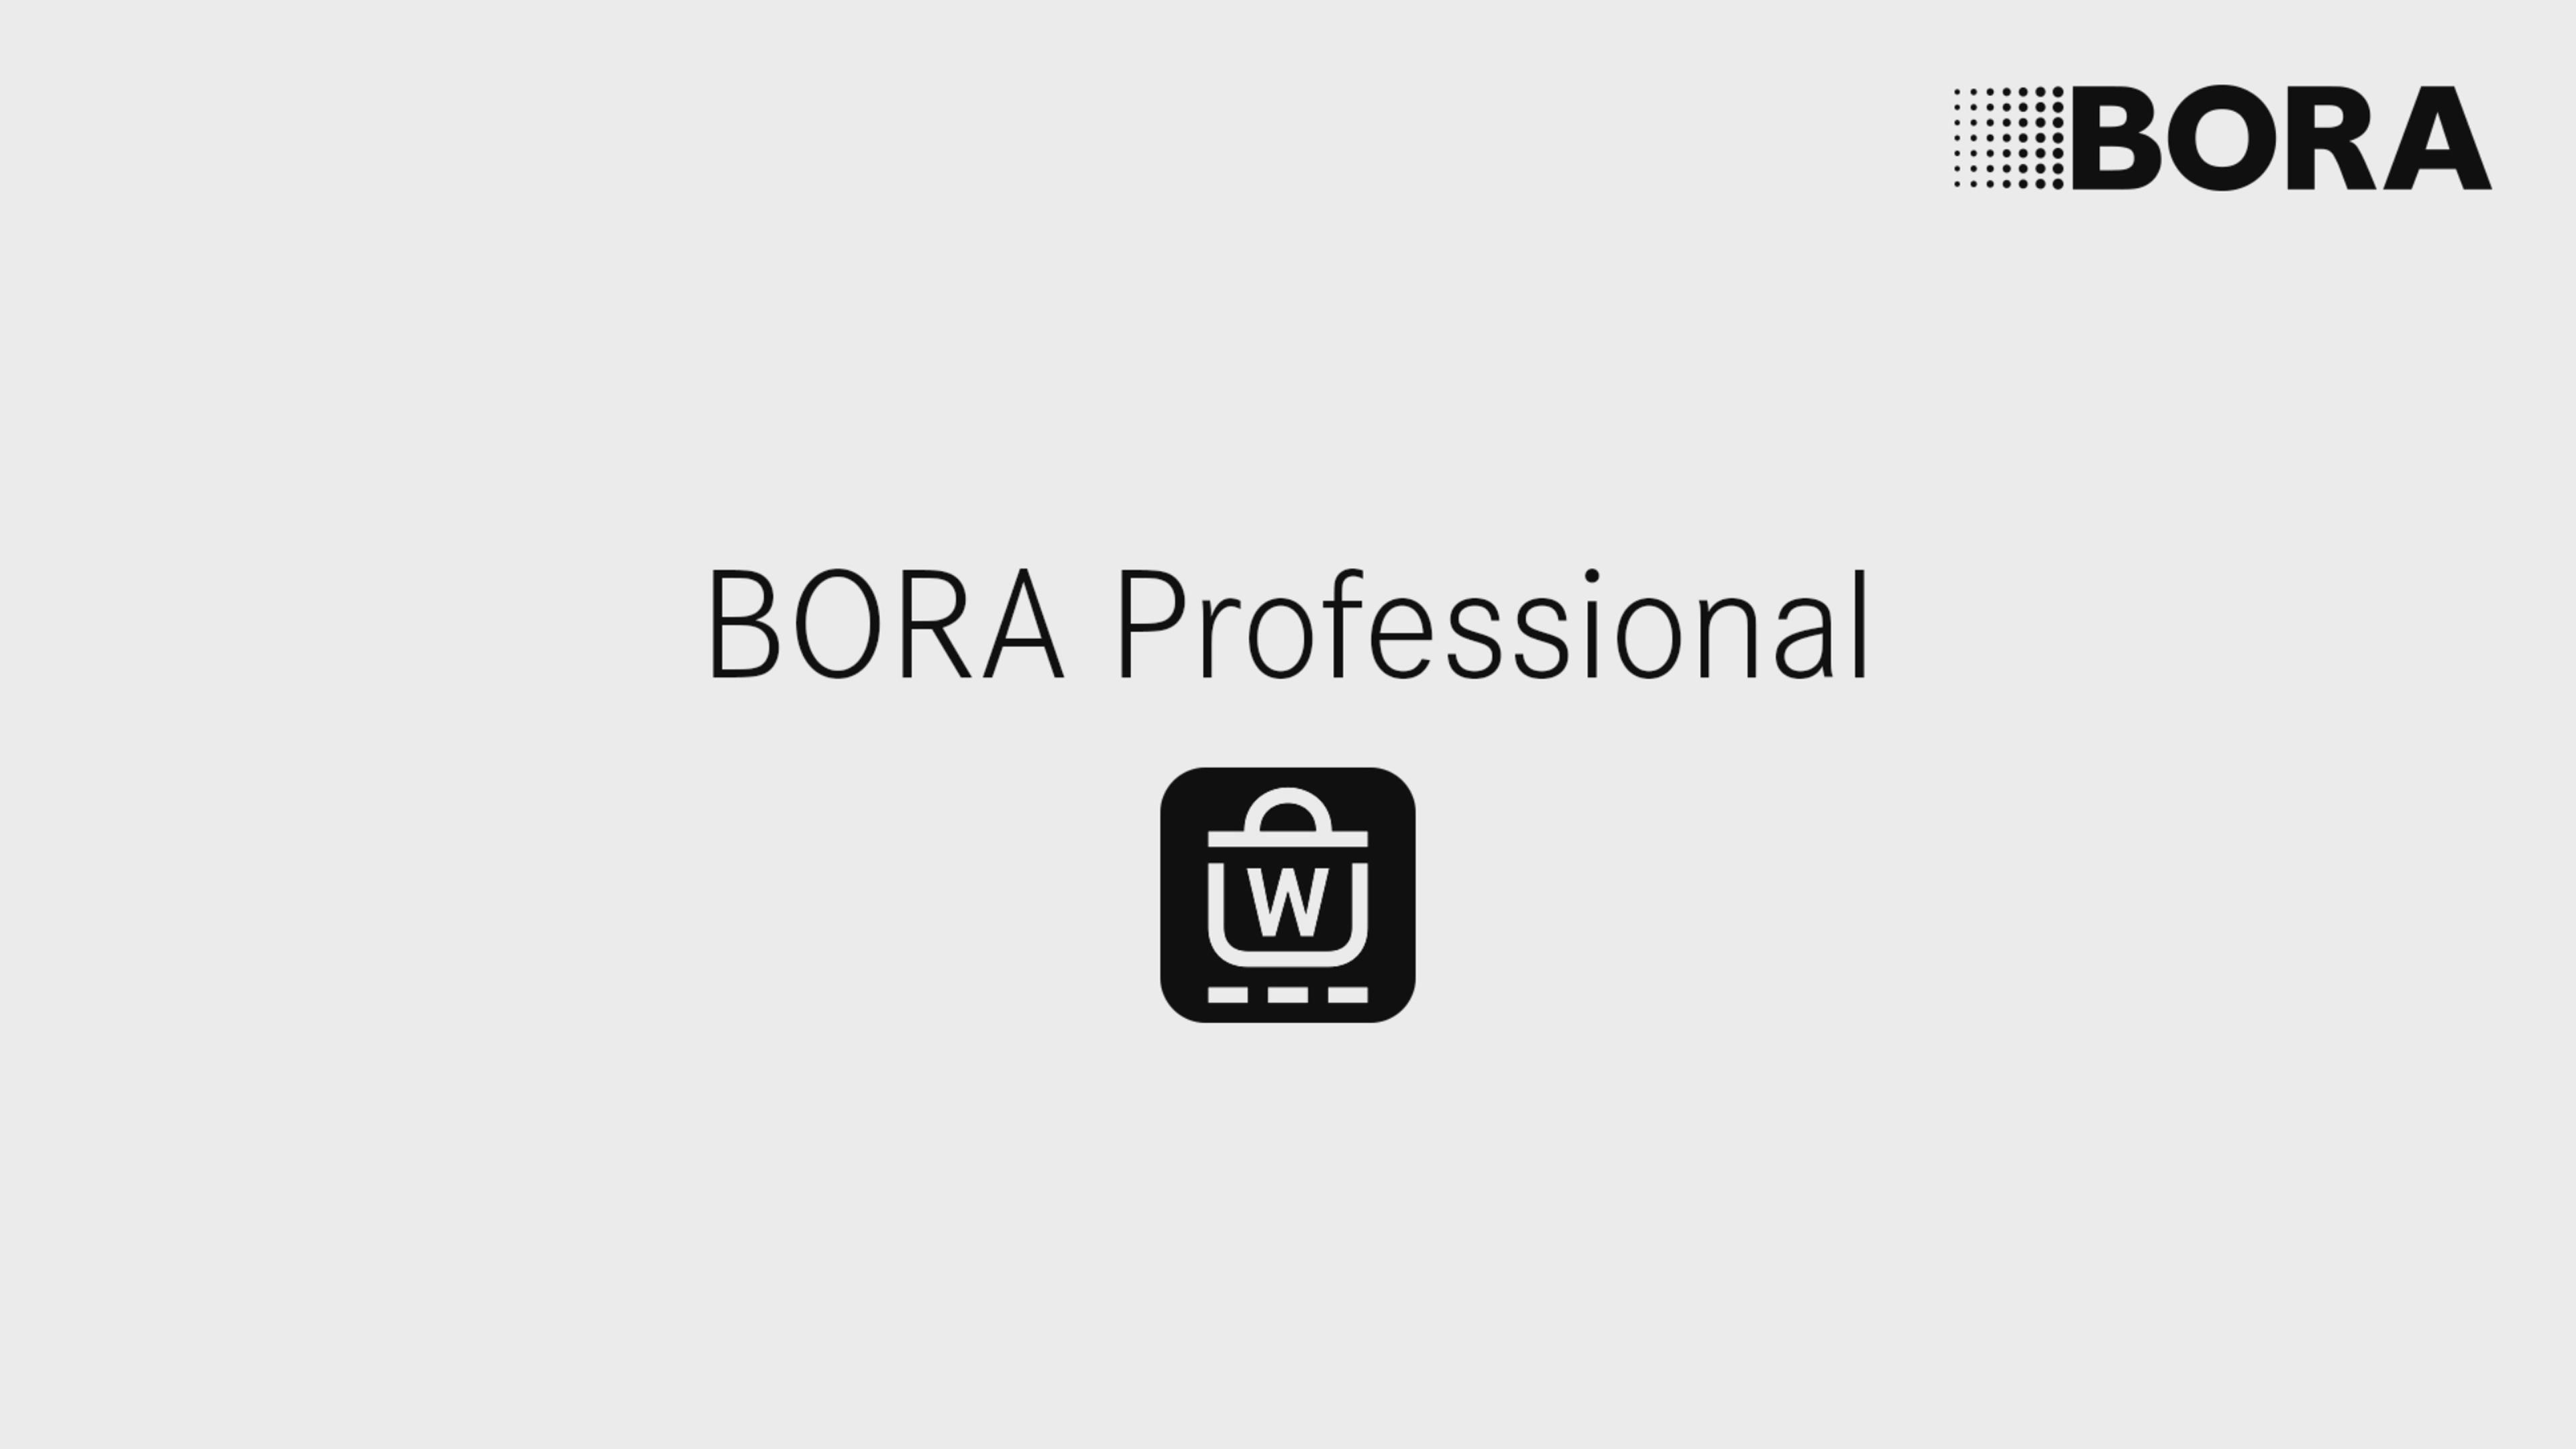 Thumbnail_06_BORA_Professional_Bedienfilm_Warmhaltestufe_3840x2160.jpg